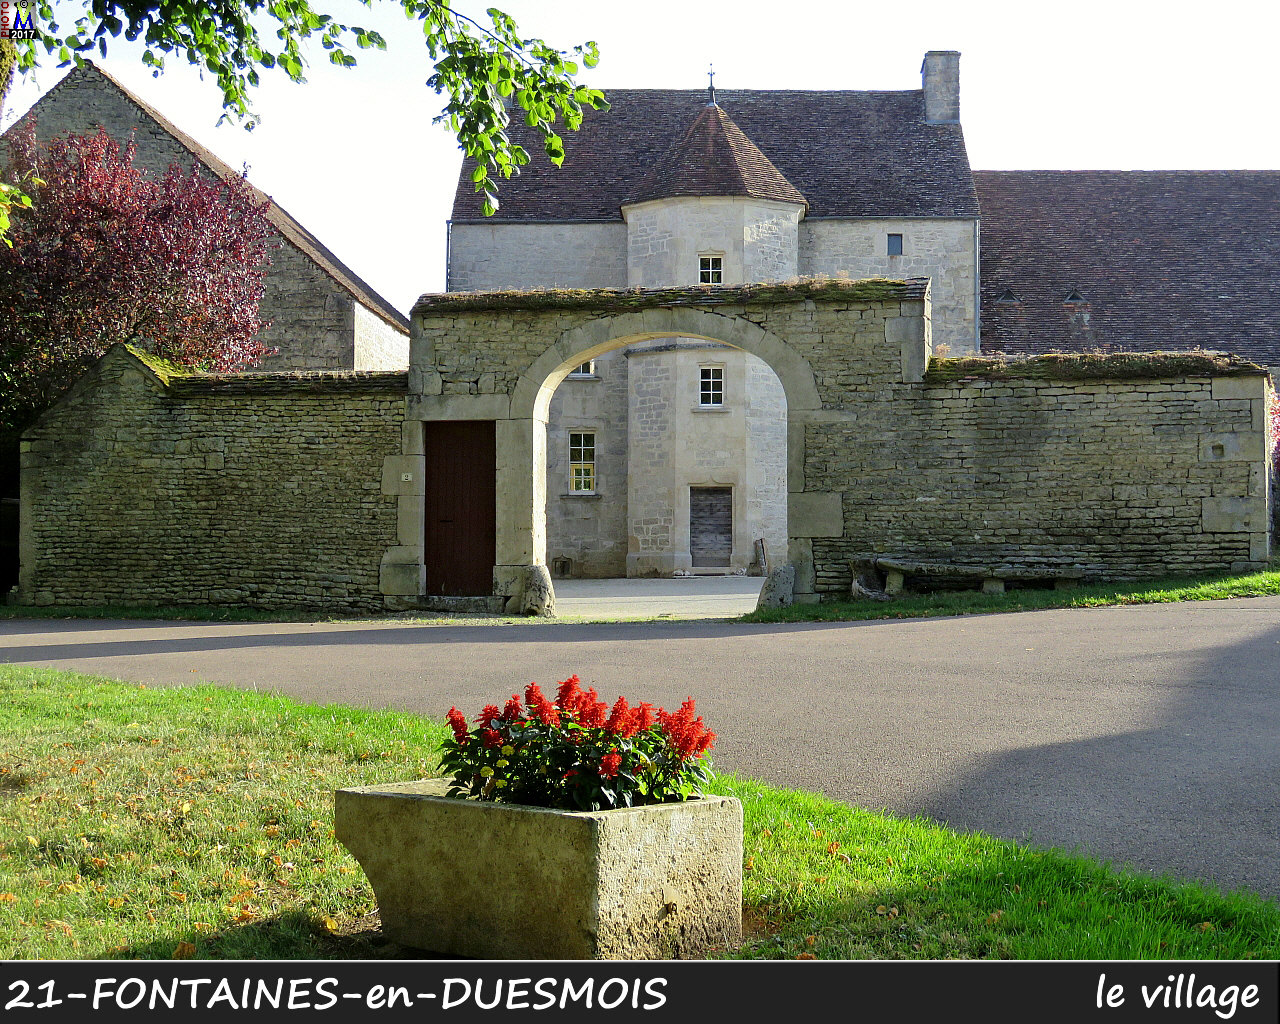 21FONTAINES-DUESMOIS_village_106.jpg